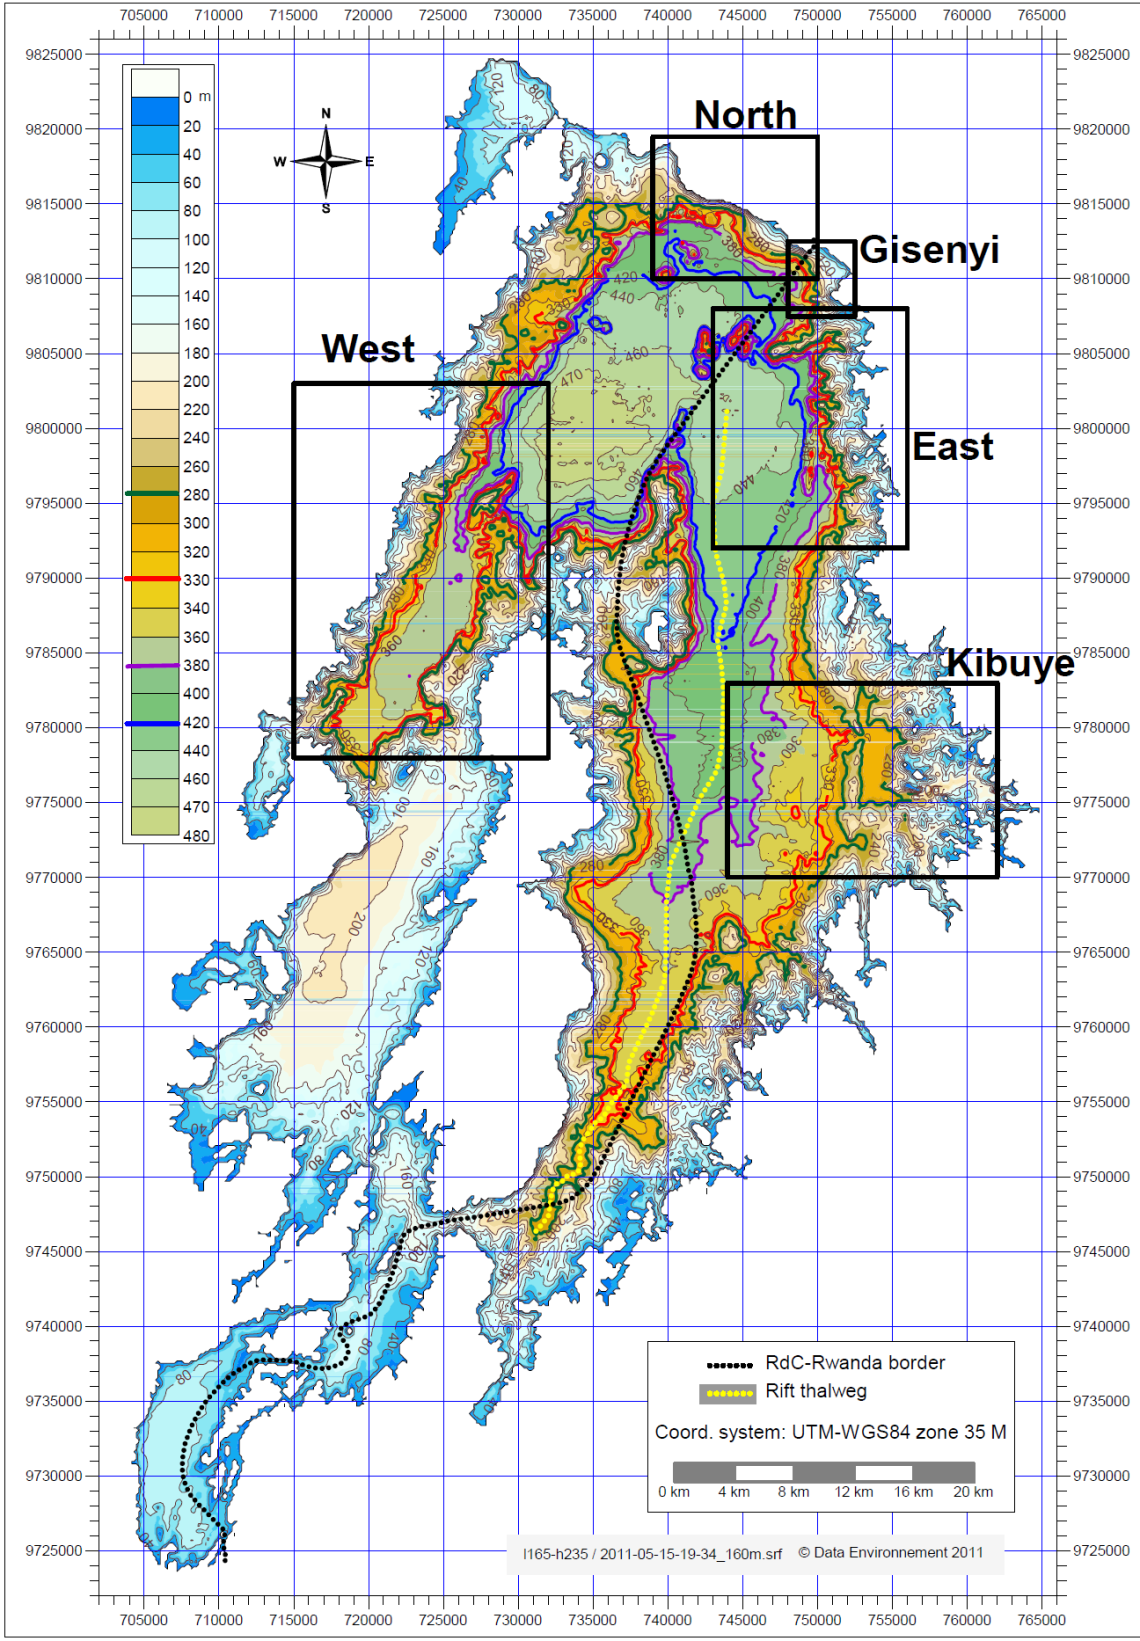 Bathymetric map of Lake Kivu showing some key depths that define resource-bearing layers